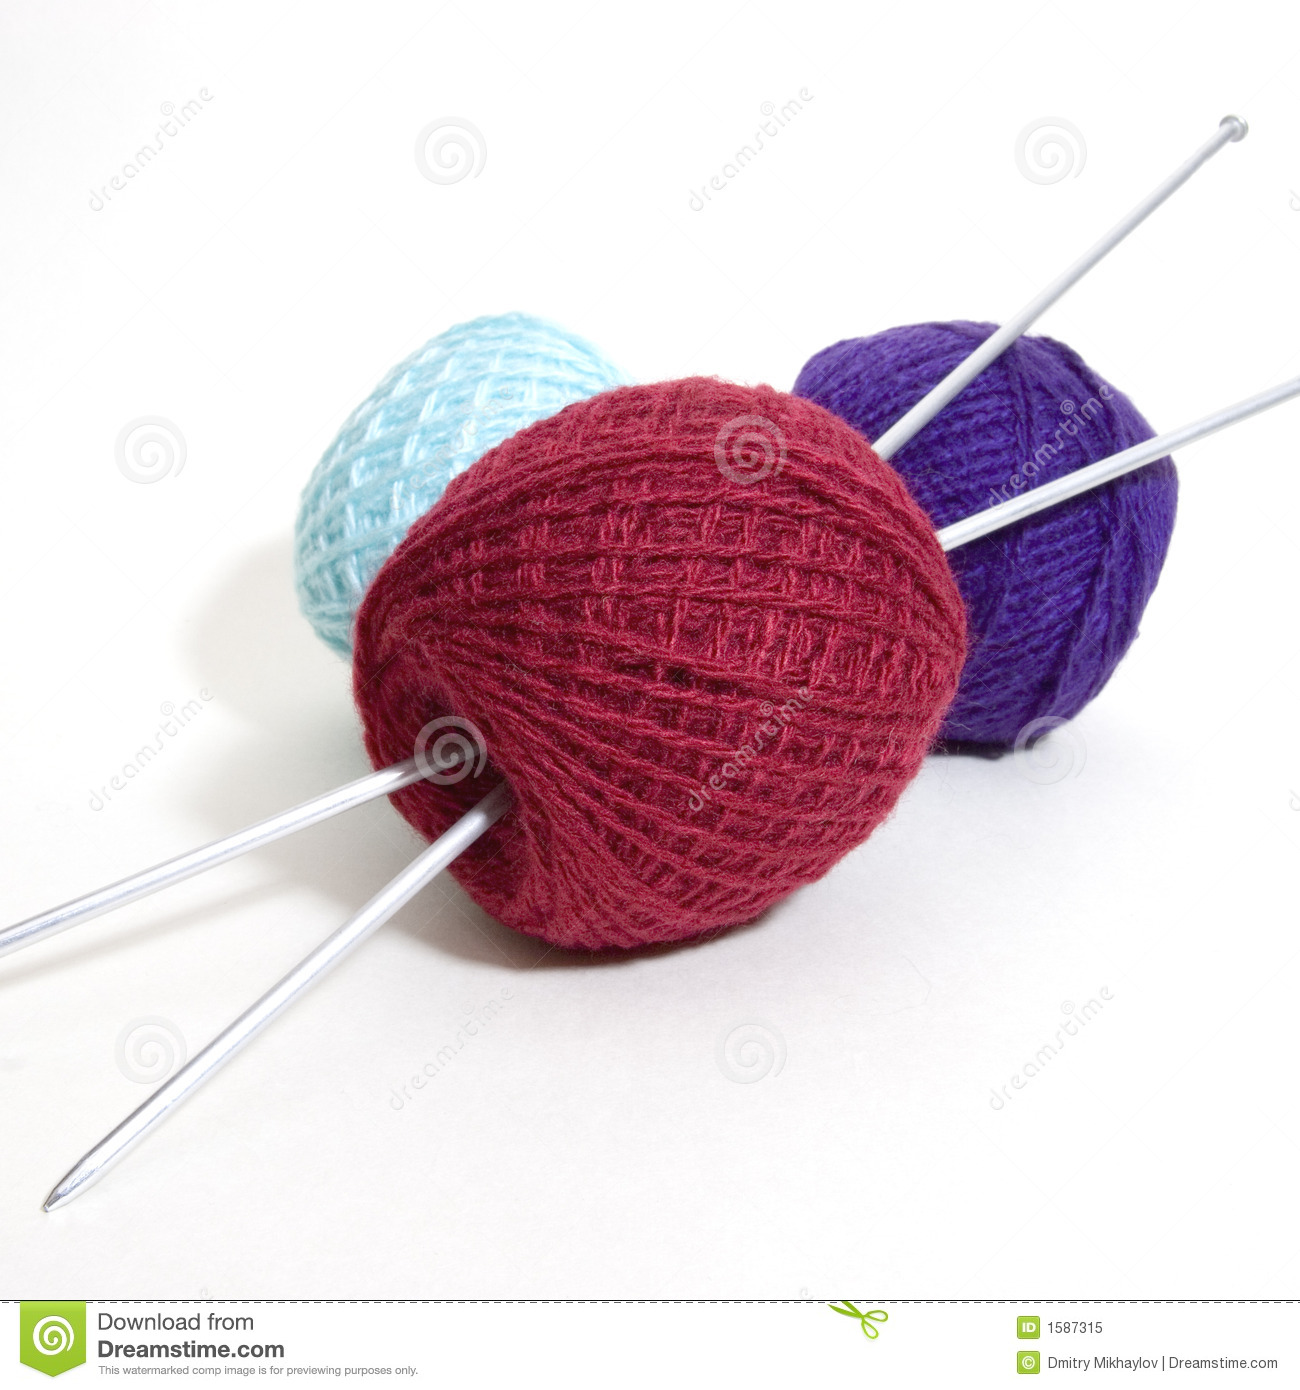 Knitting Patterns Wool And Needles : Three Wool Balls And Knitting Needles Royalty Free Stock ...